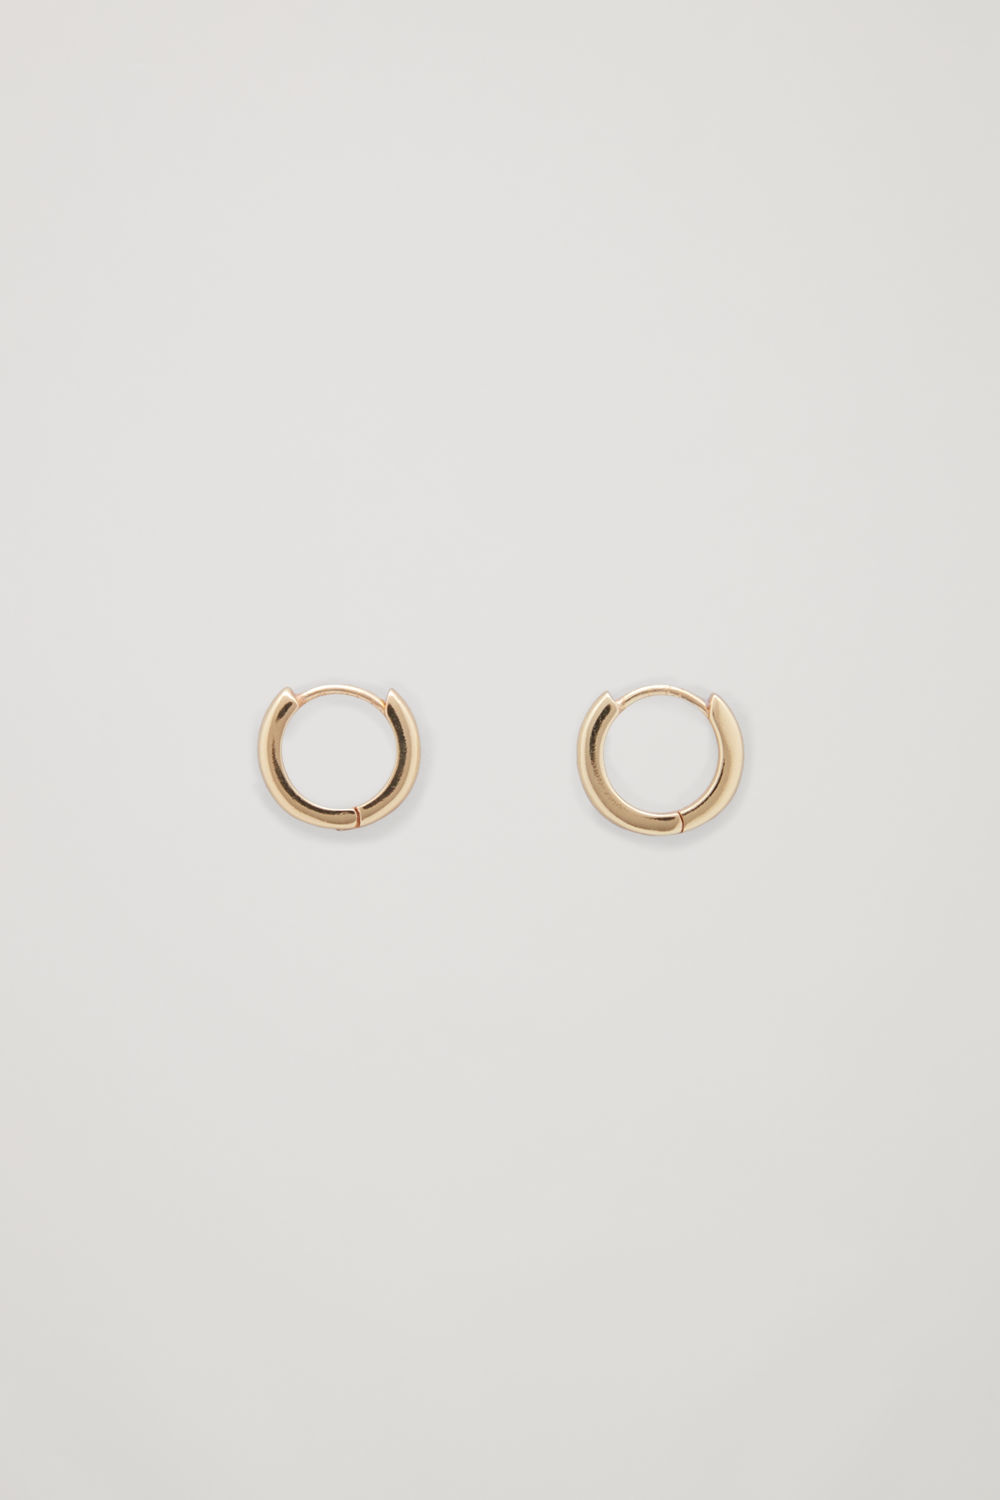 GOLD-PLATED MICRO HOOP EARRINGS